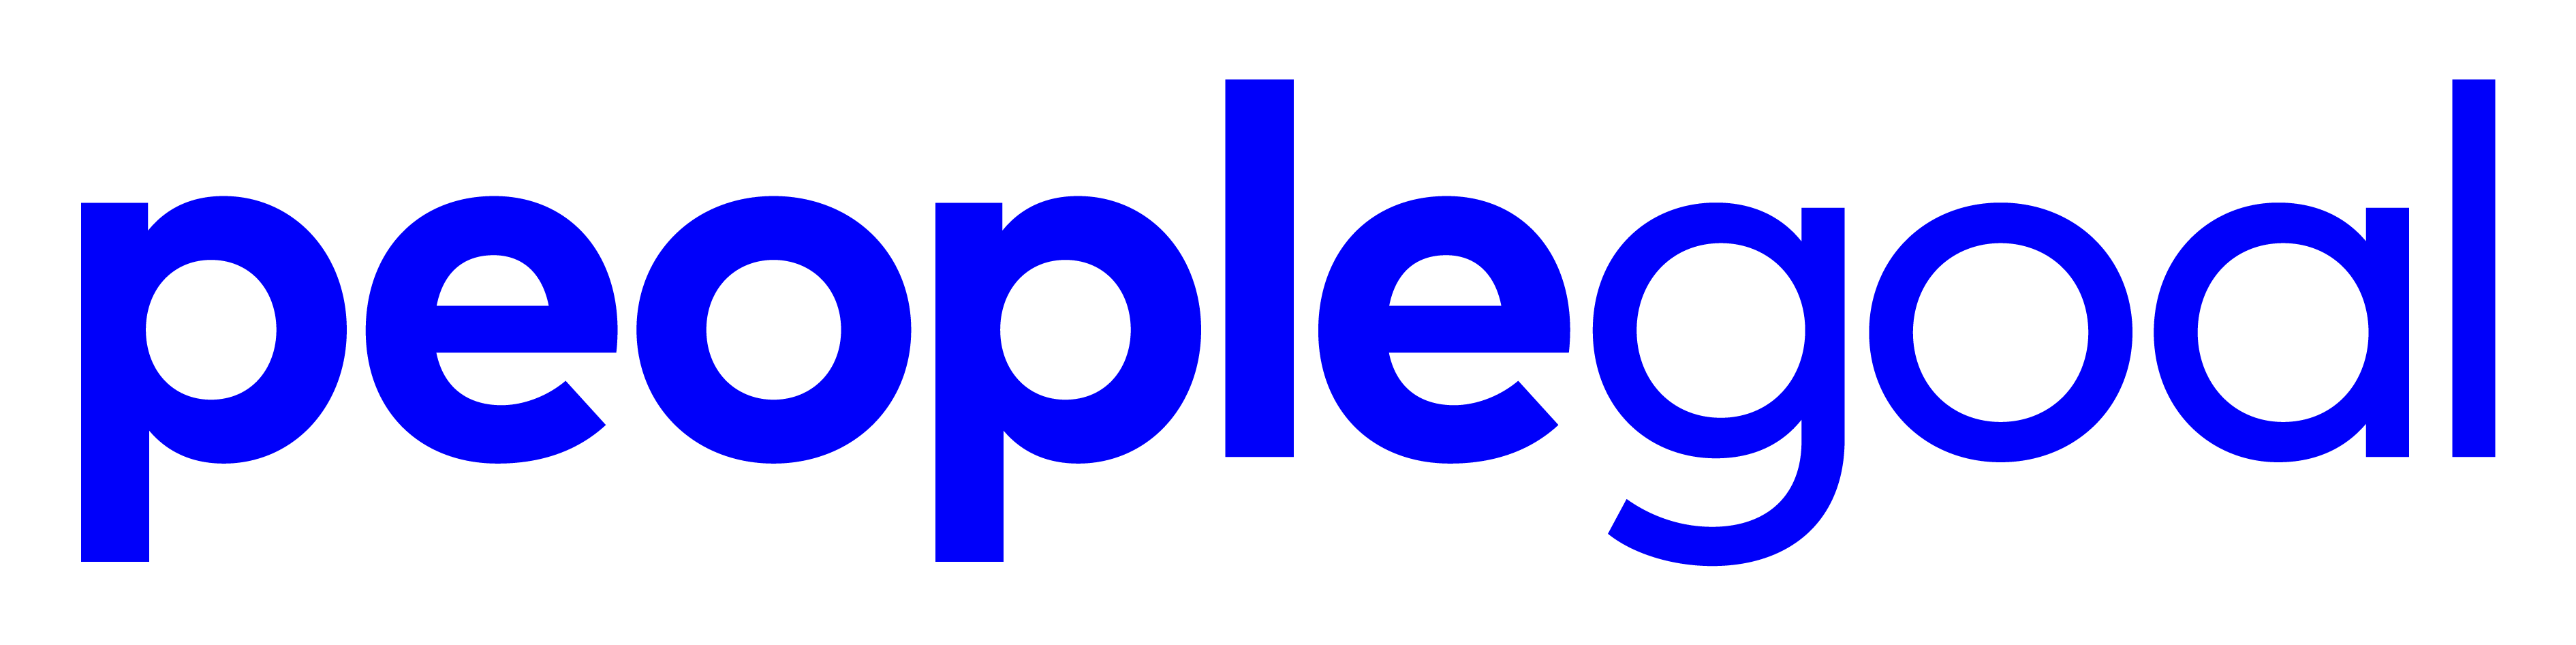 peoplegoal logo blue